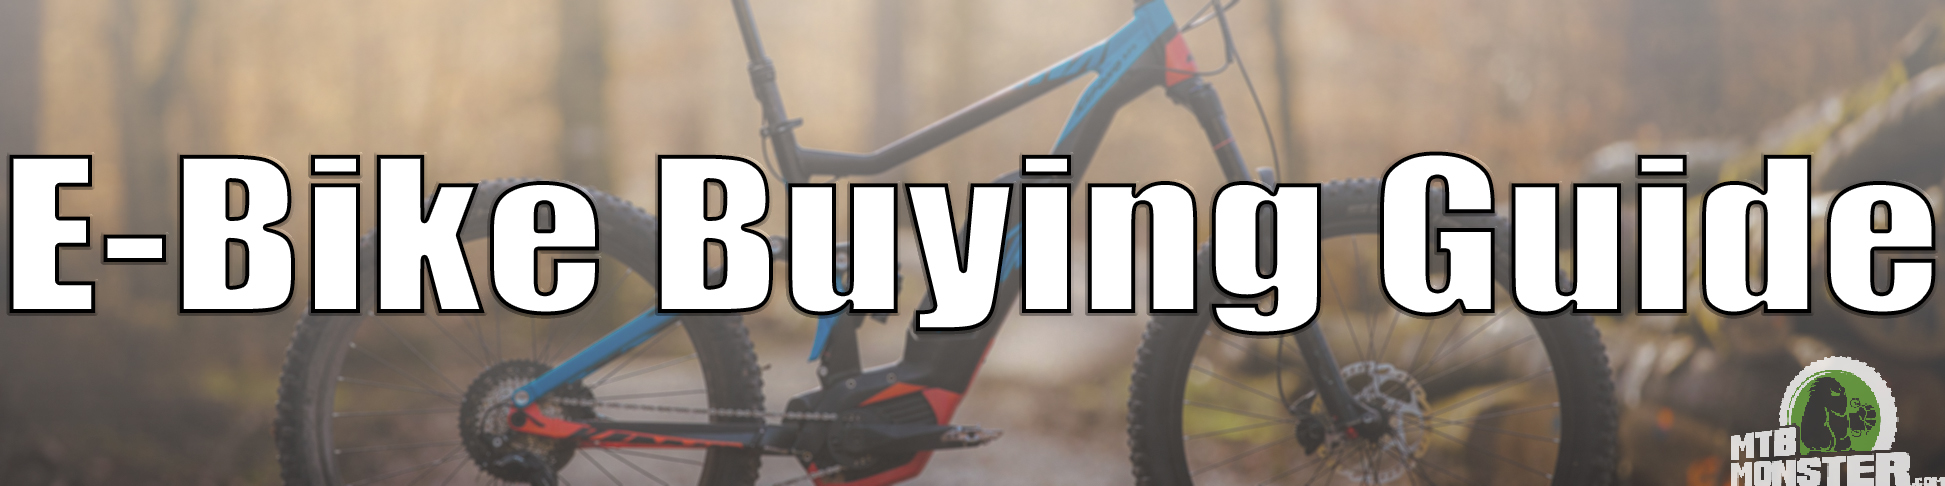 e-bike-buying-guide-from-mtb-monster-the-uk-leading-cube-lapierre-ktm-and-mondraker-e-mtb-dealer-2-.jpg